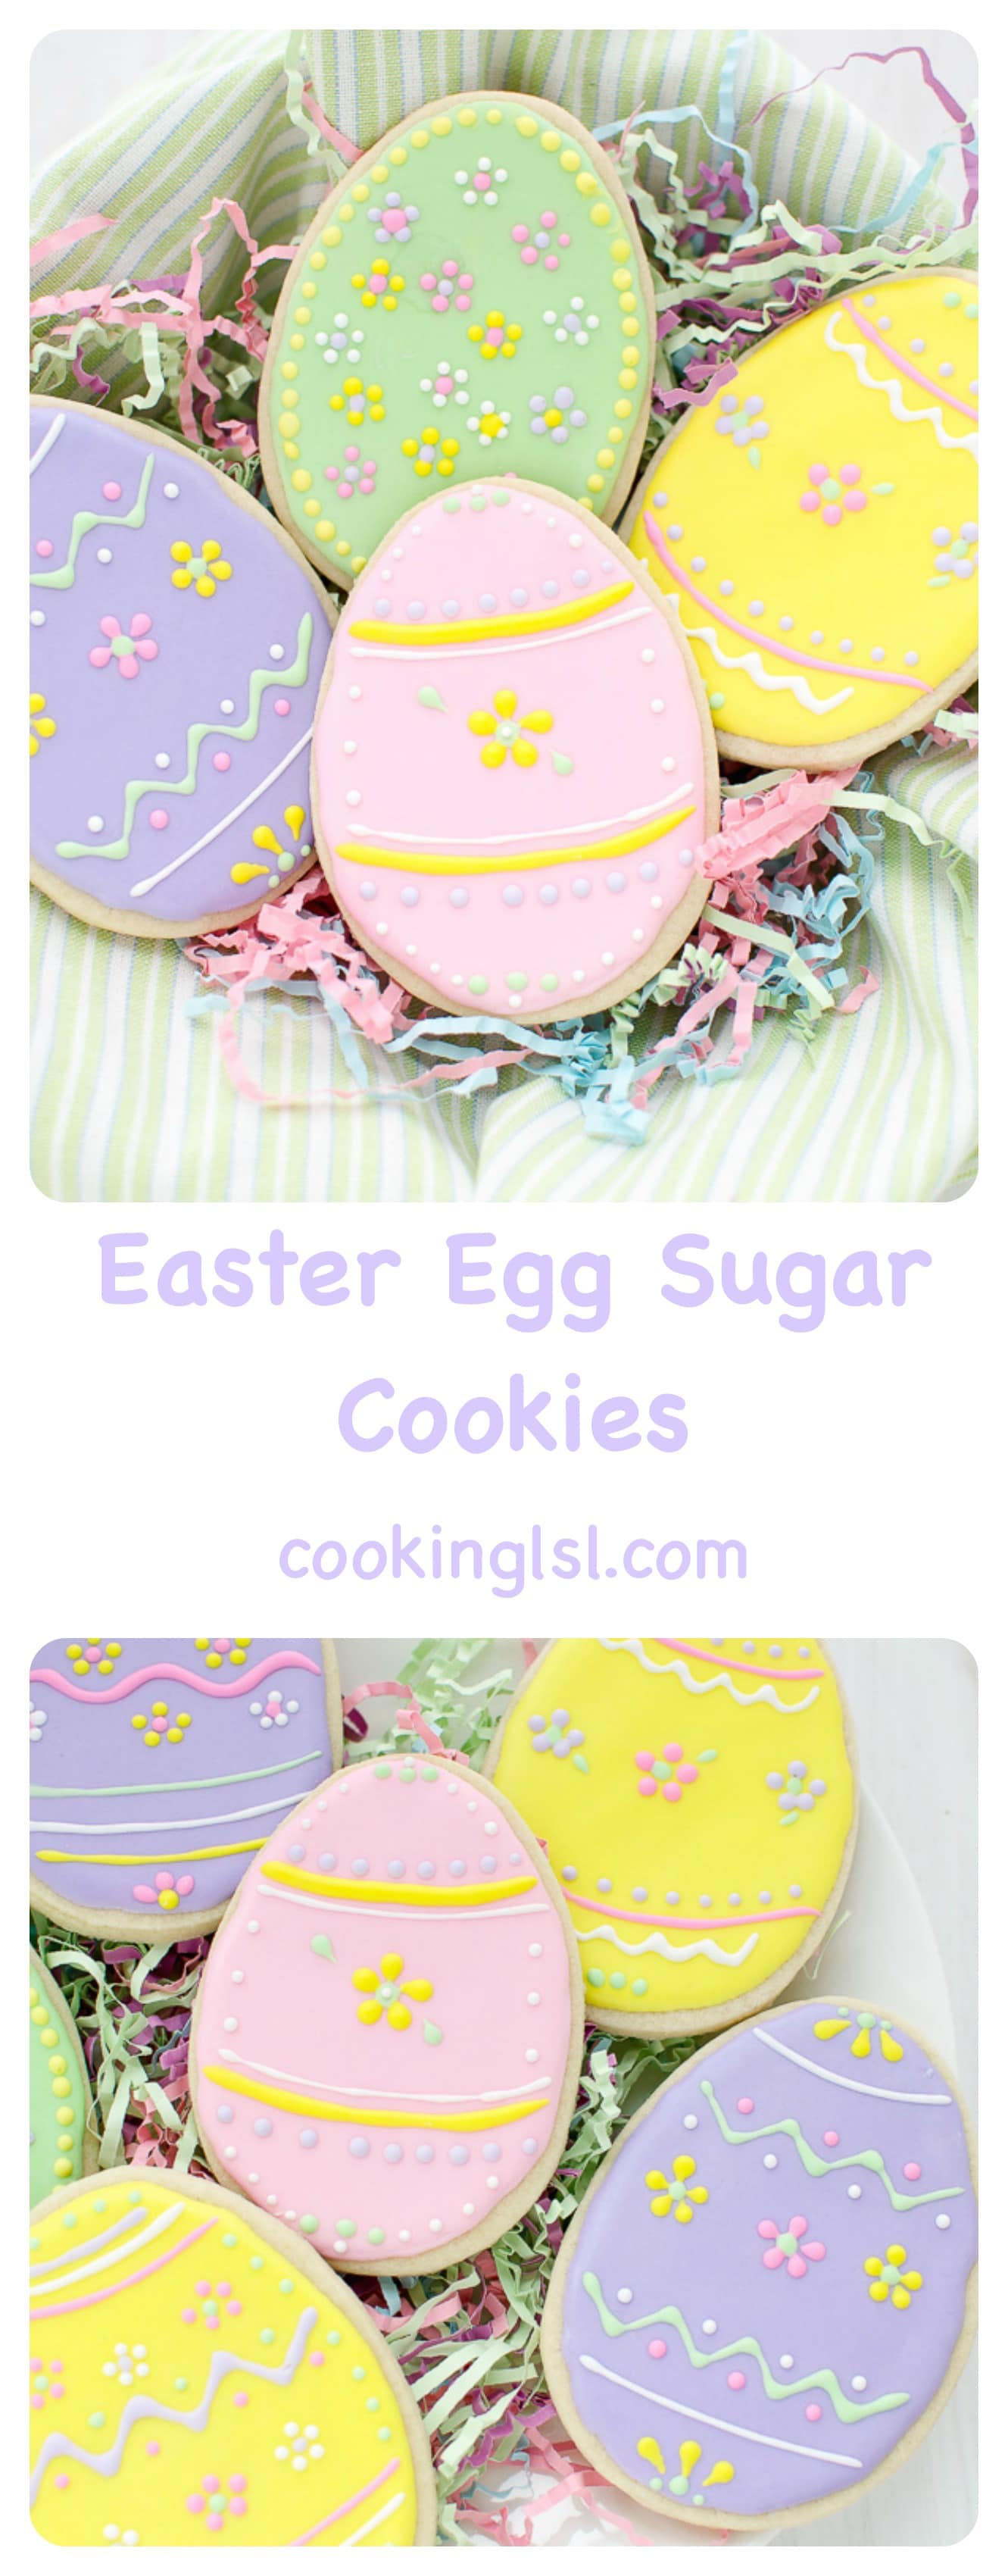 Easter-Egg-Sugar-Cookies-With-Royal-icing-recipe